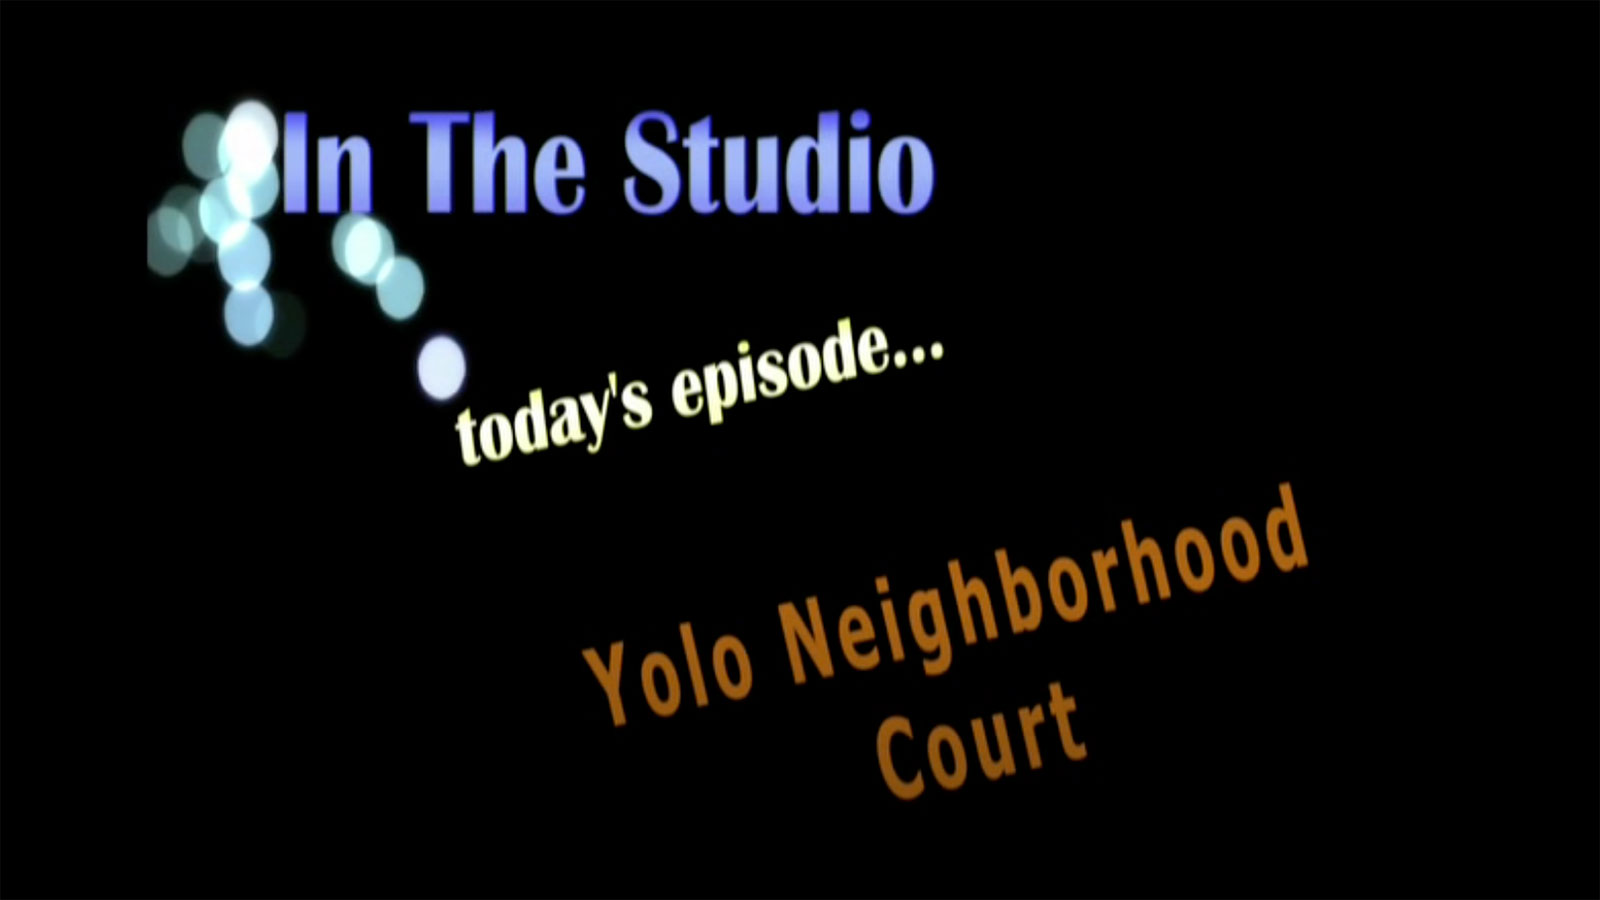 In the Studio: Yolo Neighborhood Court